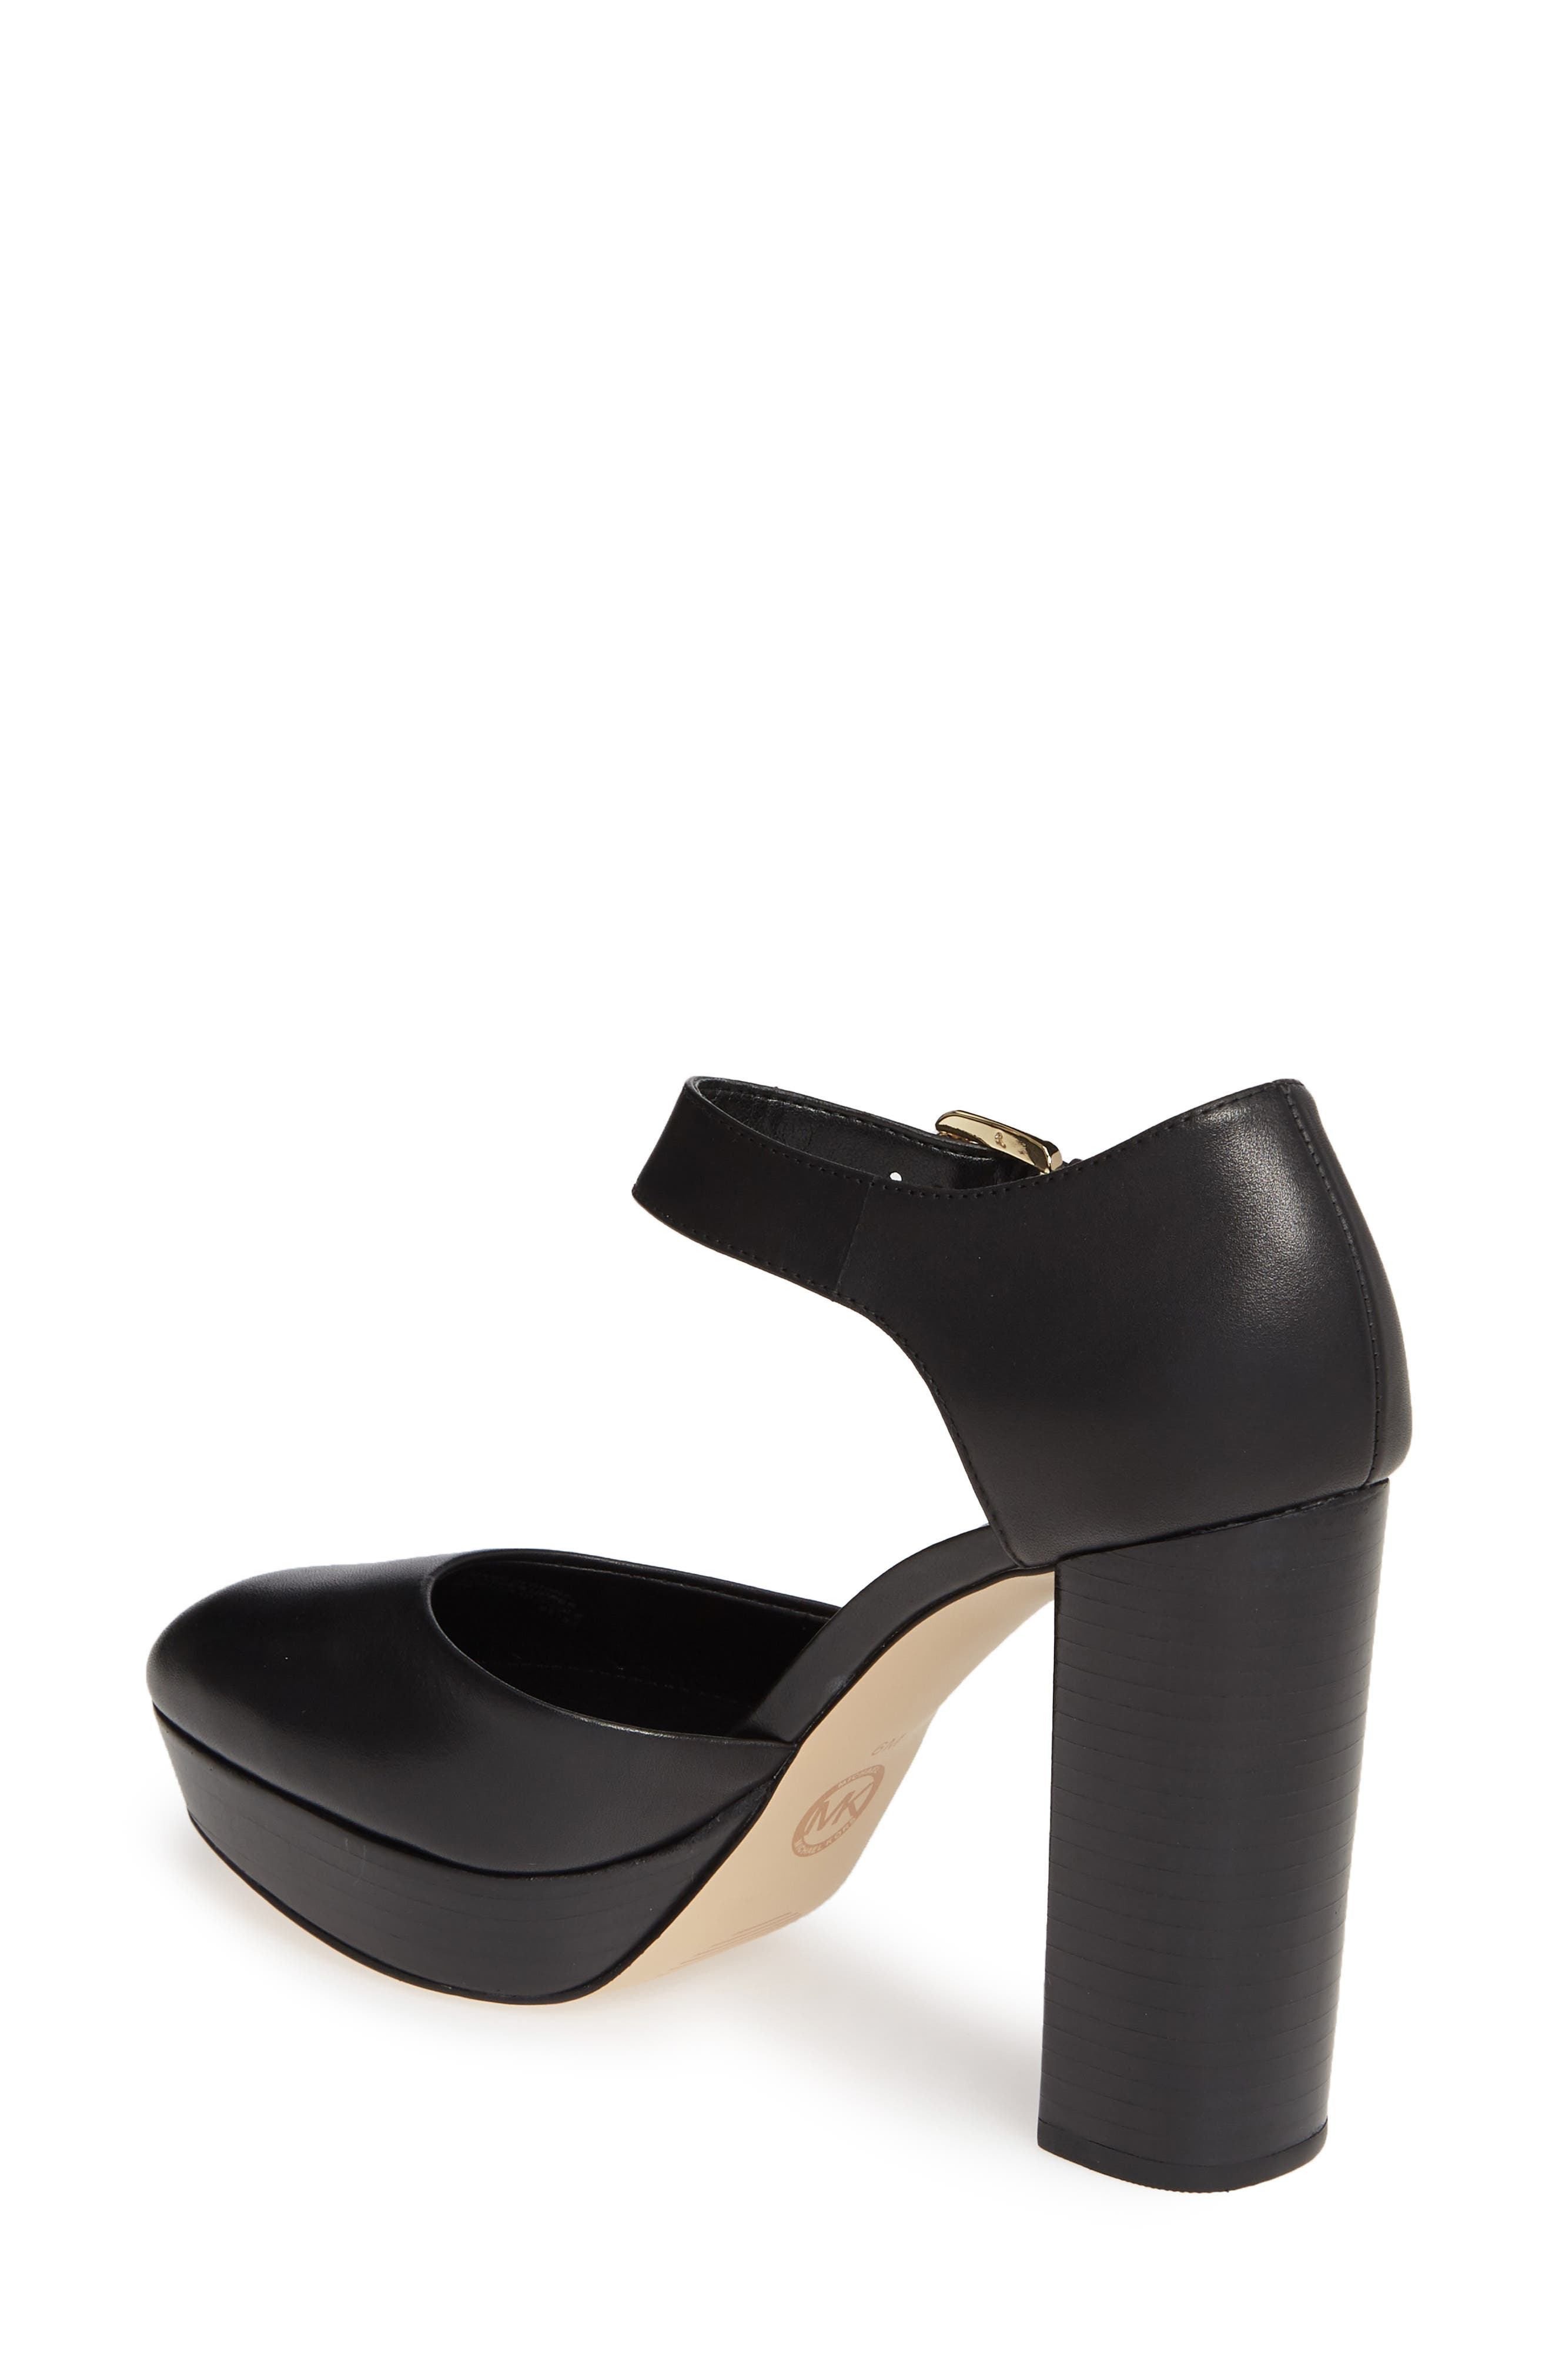 MICHAEL MICHAEL KORS, Platform Pump, Alternate thumbnail 2, color, BLACK VACHETTA LEATHER